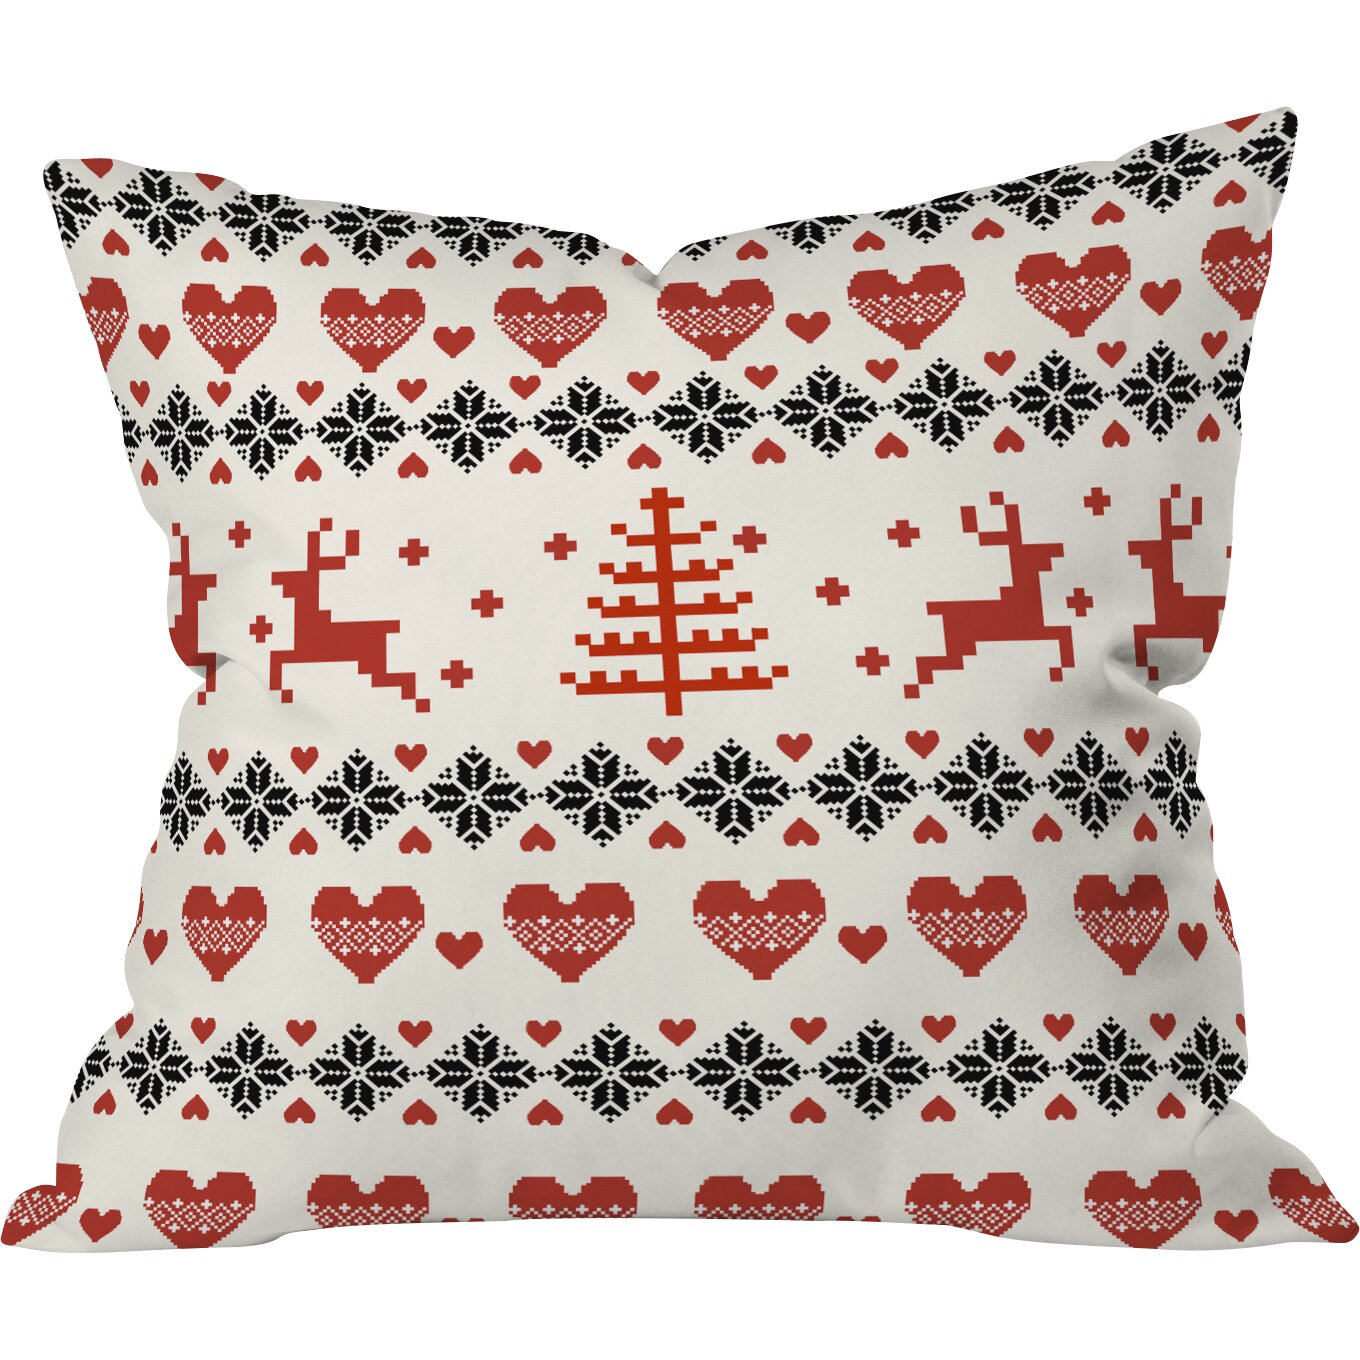 DENY Designs Natt Knitting Deer White Hearts Throw Pillow Wayfair